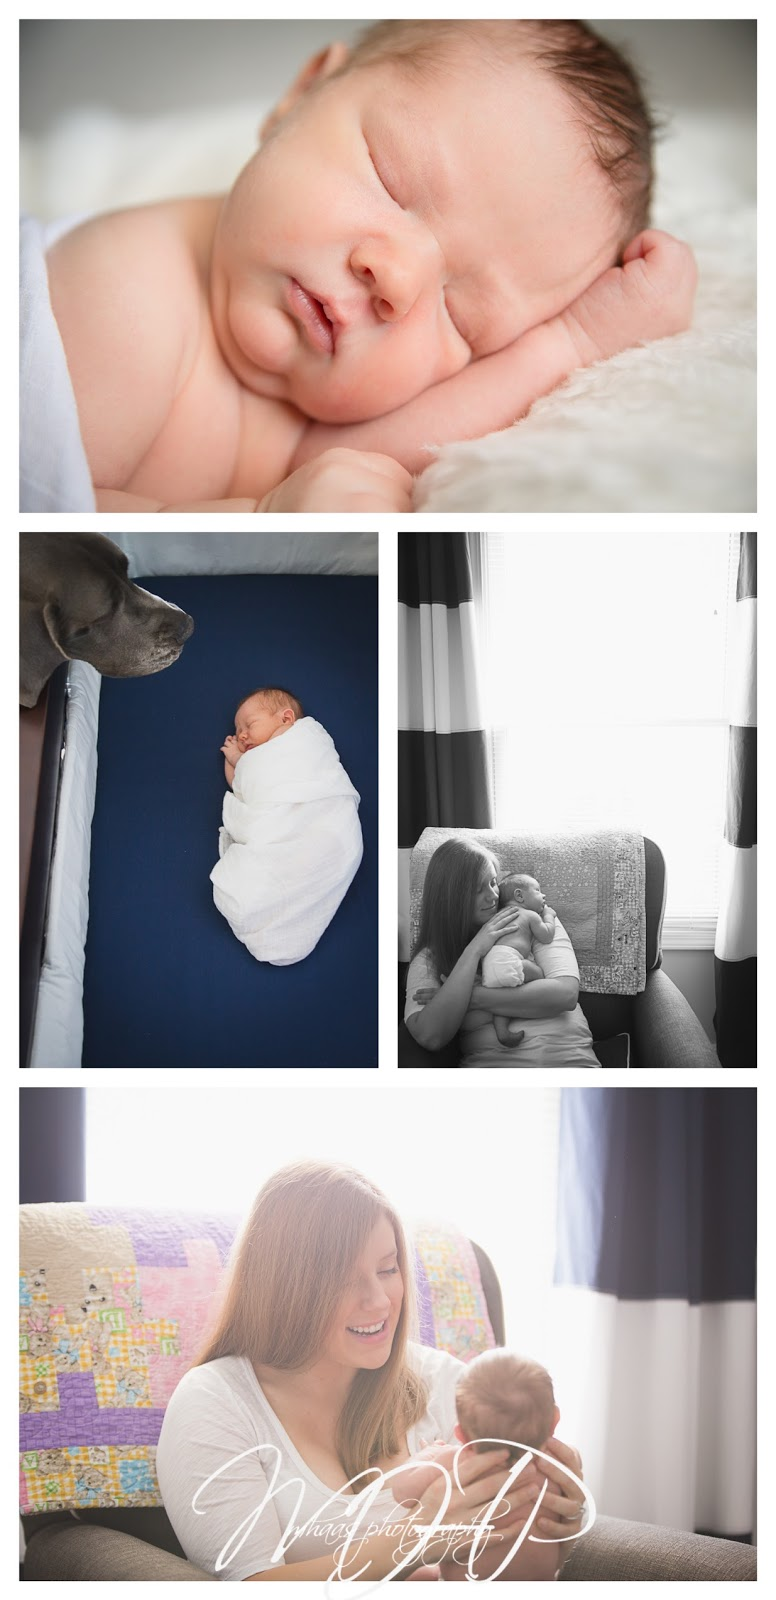 ©MHaas Photography, 7 days new, newborn, newborn photos louisville ky, family home, family portraits louisville, family photos, Louisville Family Photographer, lifestyle, baby, Baby Plans, boy,